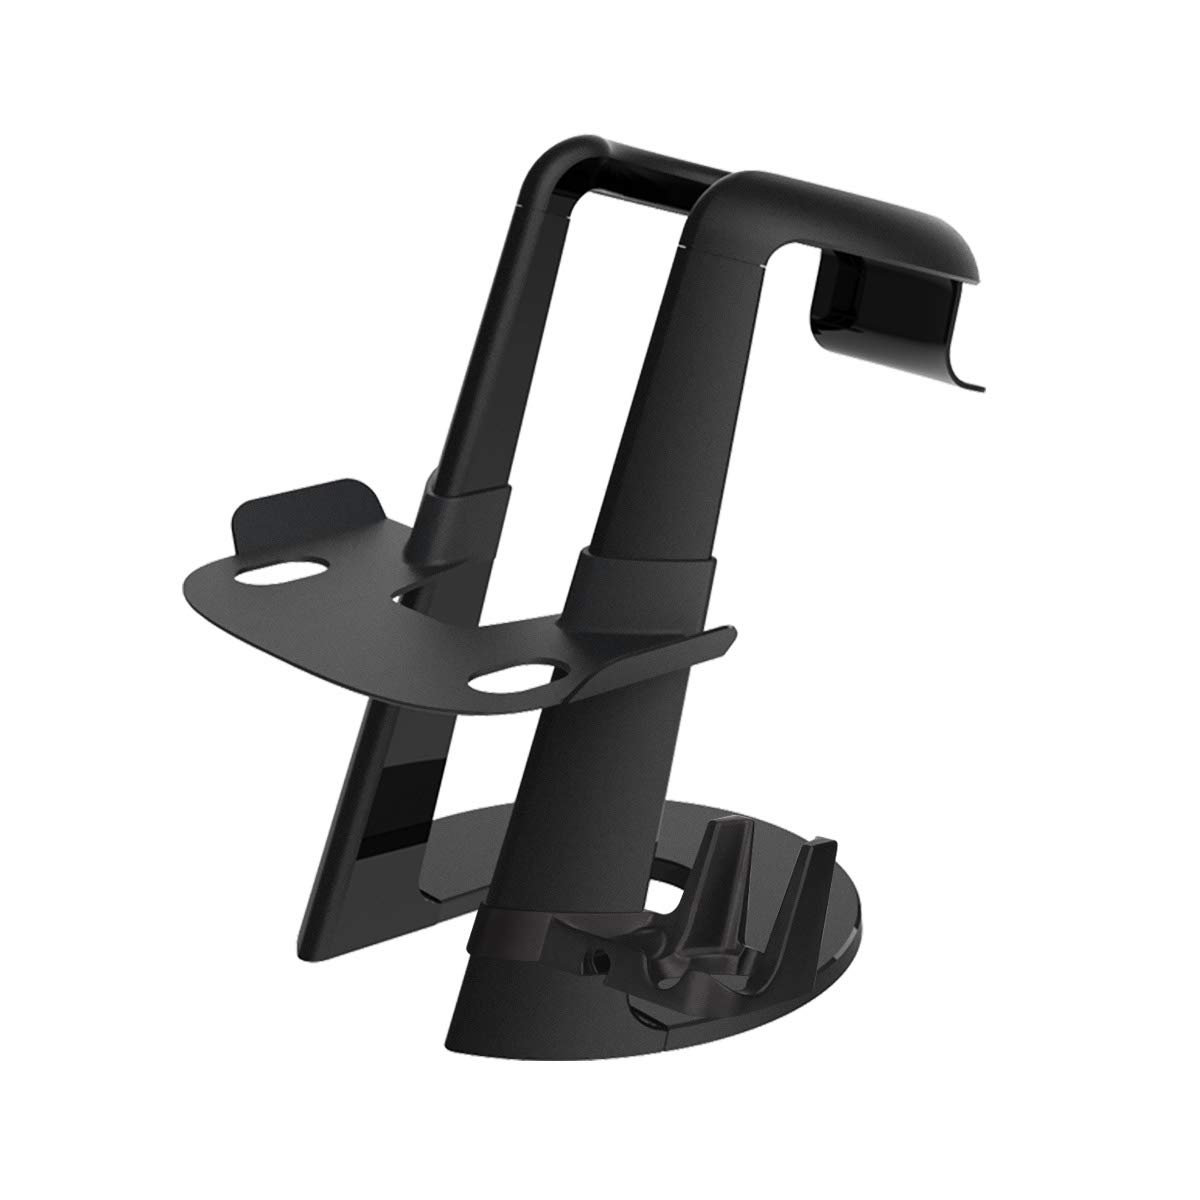 afaith vr headset holder for oculus go storage display mount virtual reality travel stand support oculus rift, htc vive, sony playstation vr video game AFAITH VR Headset holder for Oculus Go Storage Display Mount Virtual Reality Travel Stand Support Oculus Rift, HTC Vive, Sony PlayStation VR Video Game 51CLkZcfPGL